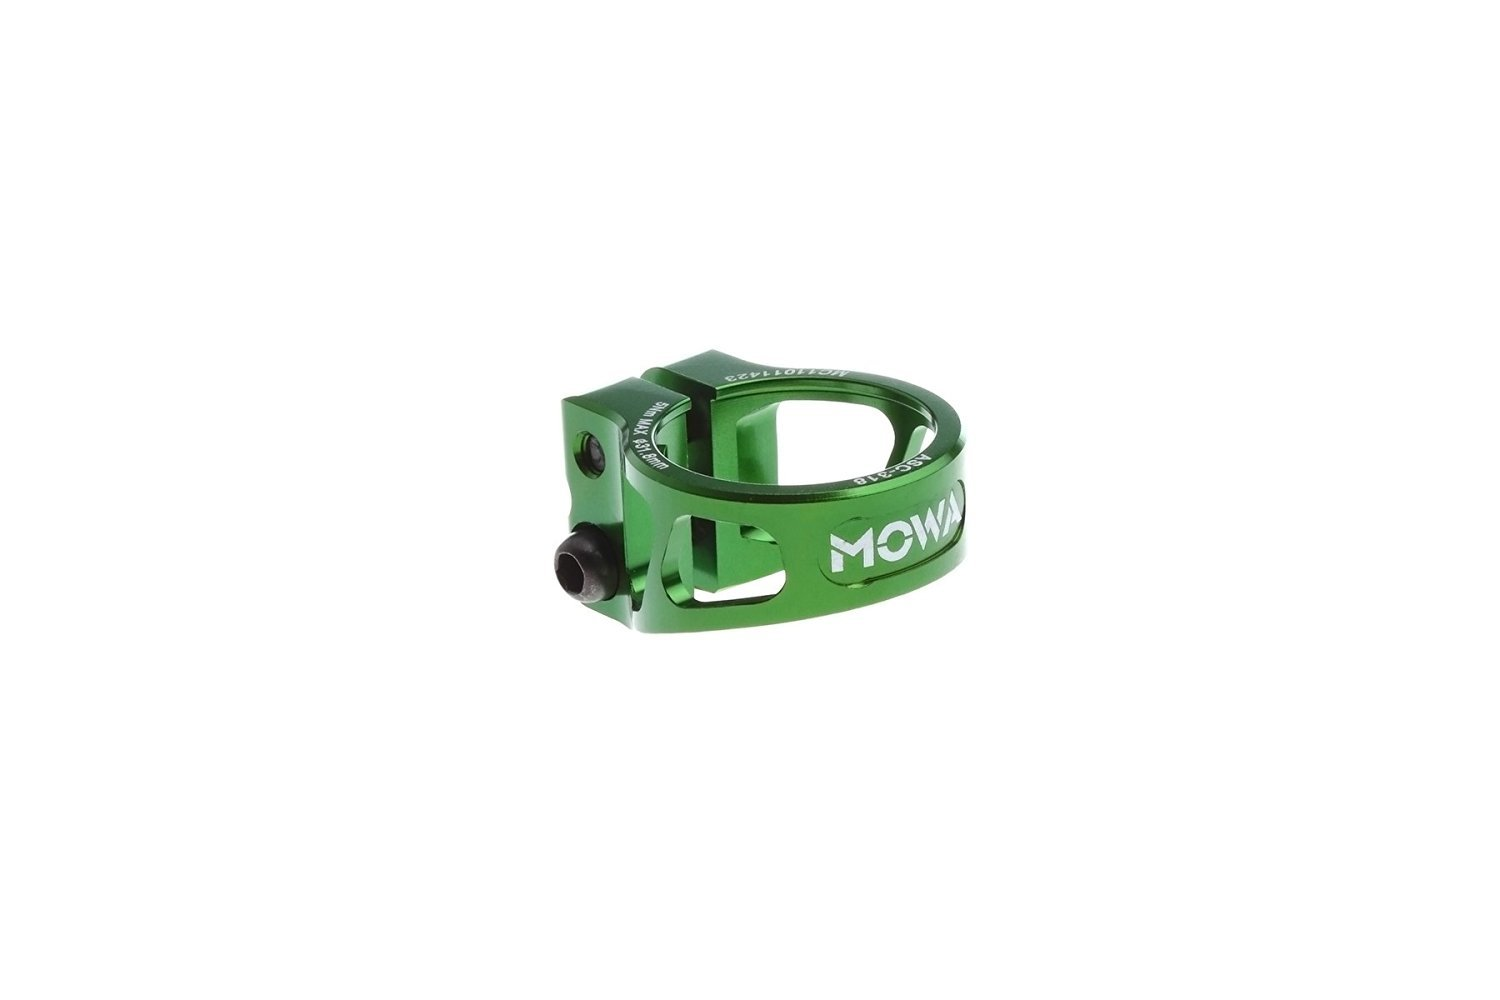 MOWA ASC Road Cyclocross CX Mountain Bicycle MTB Bike Cycling Alloy Seatpost Clamp 31.8 and 34.9 (Green, 31.8mm) by MOWA